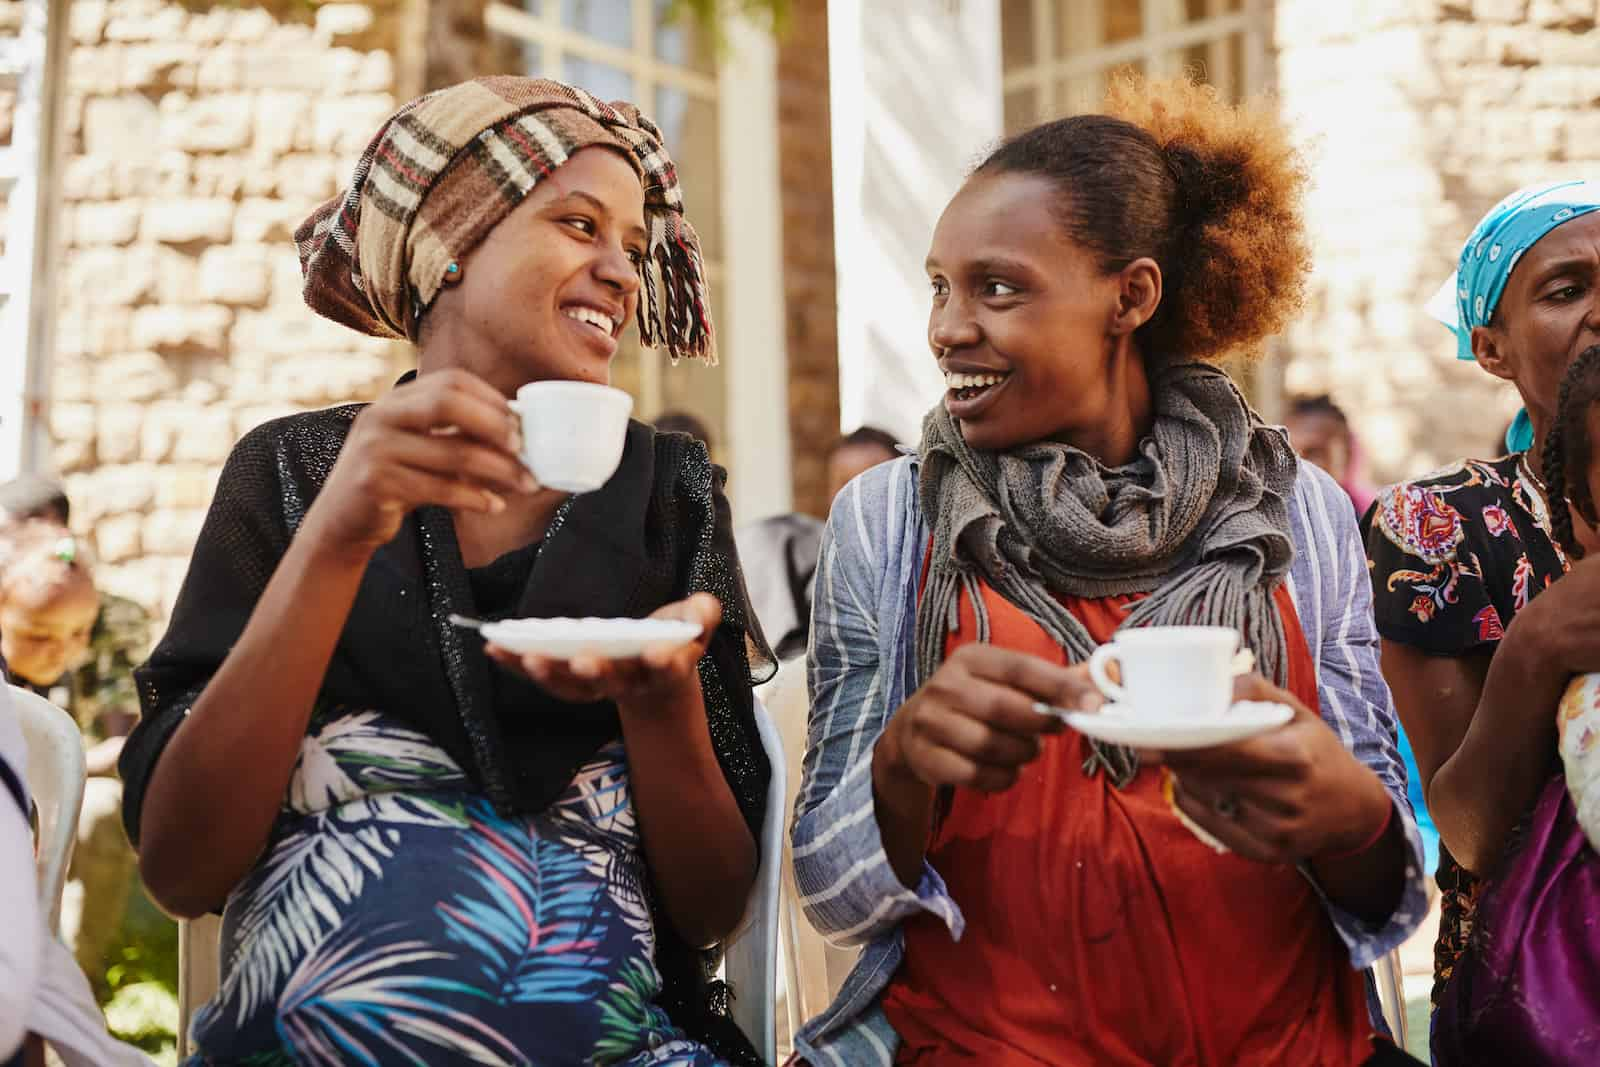 Two women drink coffee, smiling at each other.